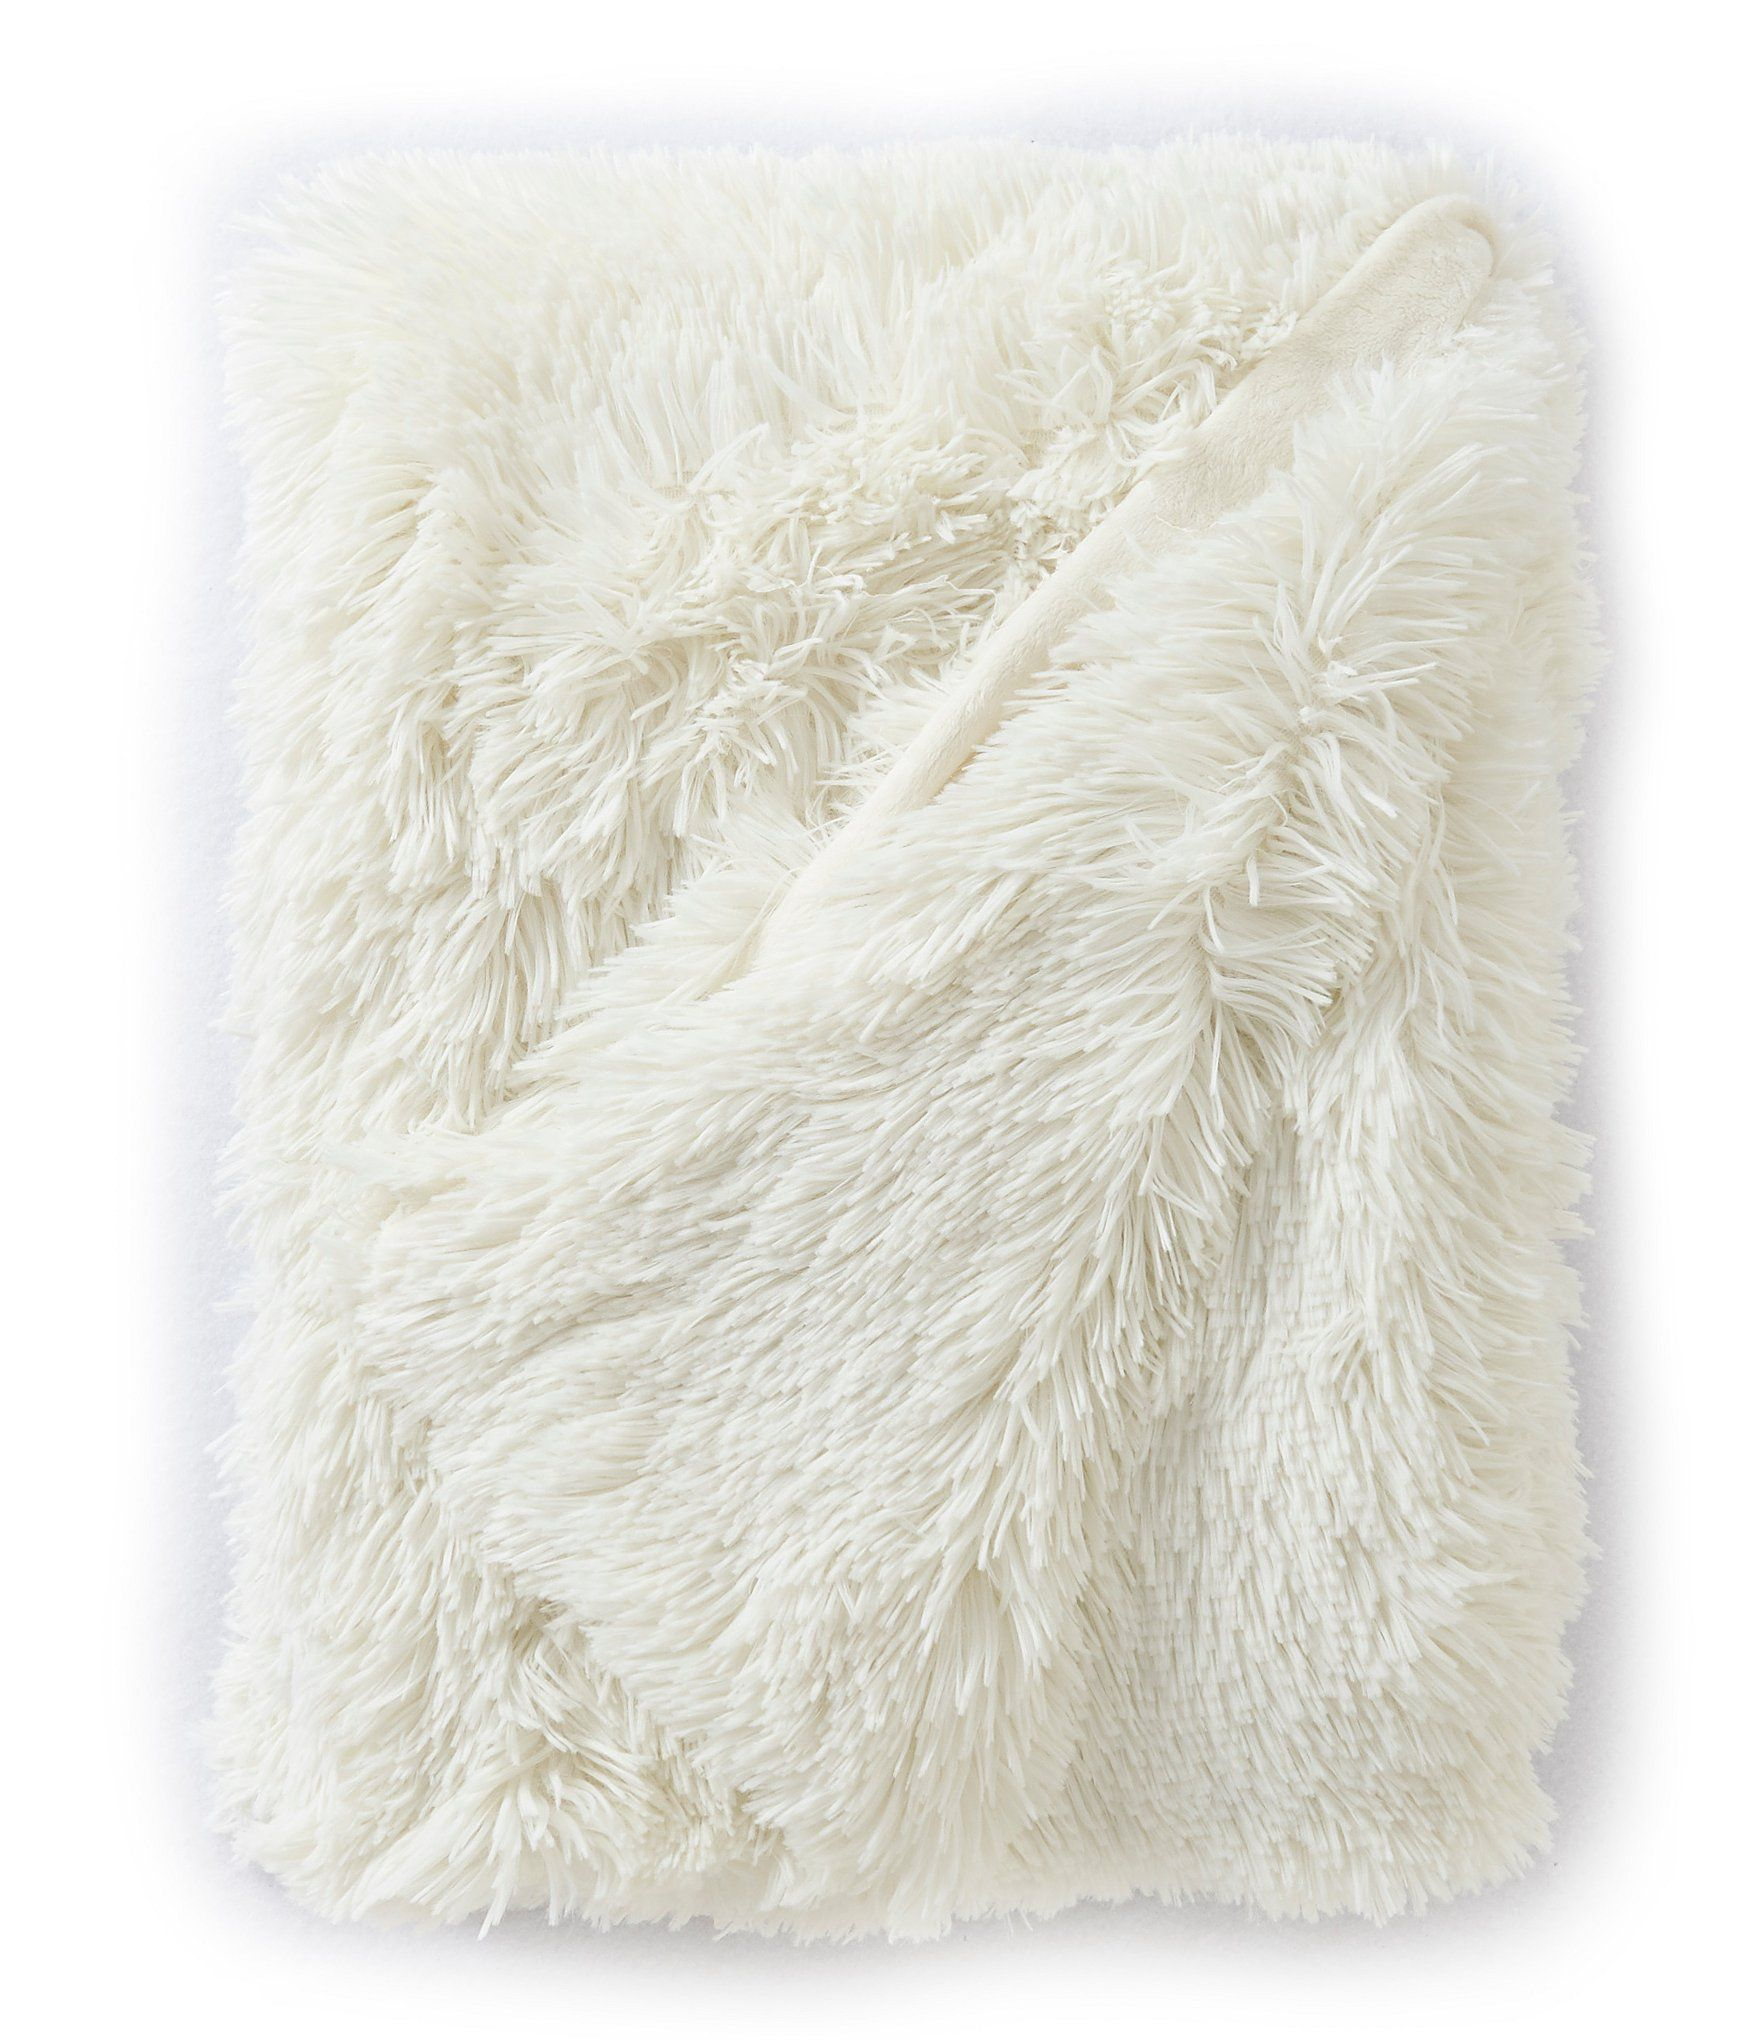 Studio D Shagalicious Lightweight Reversible Throw - Dillards